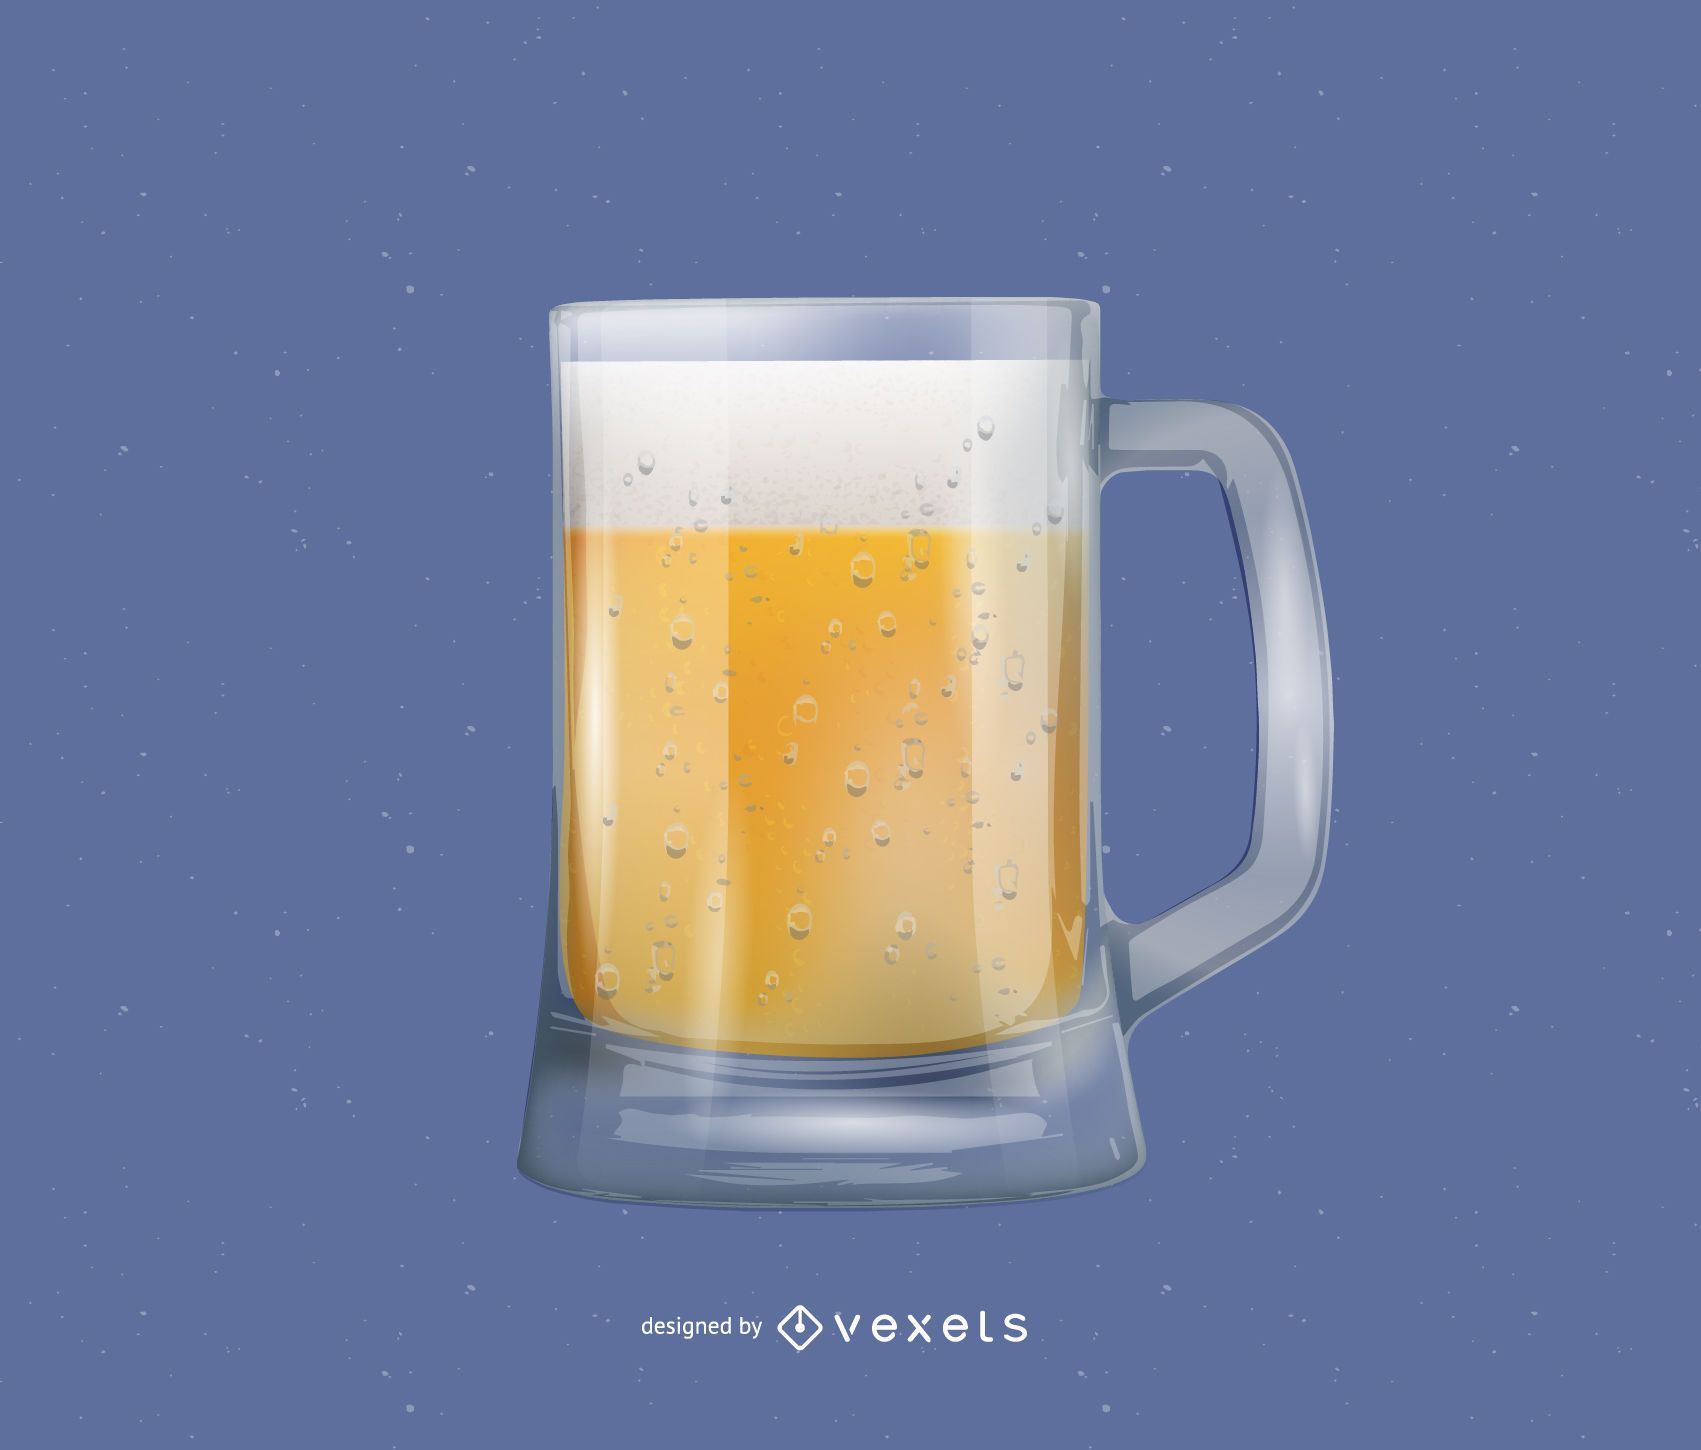 Lifelike Beer Glasses and Beer Bubbles